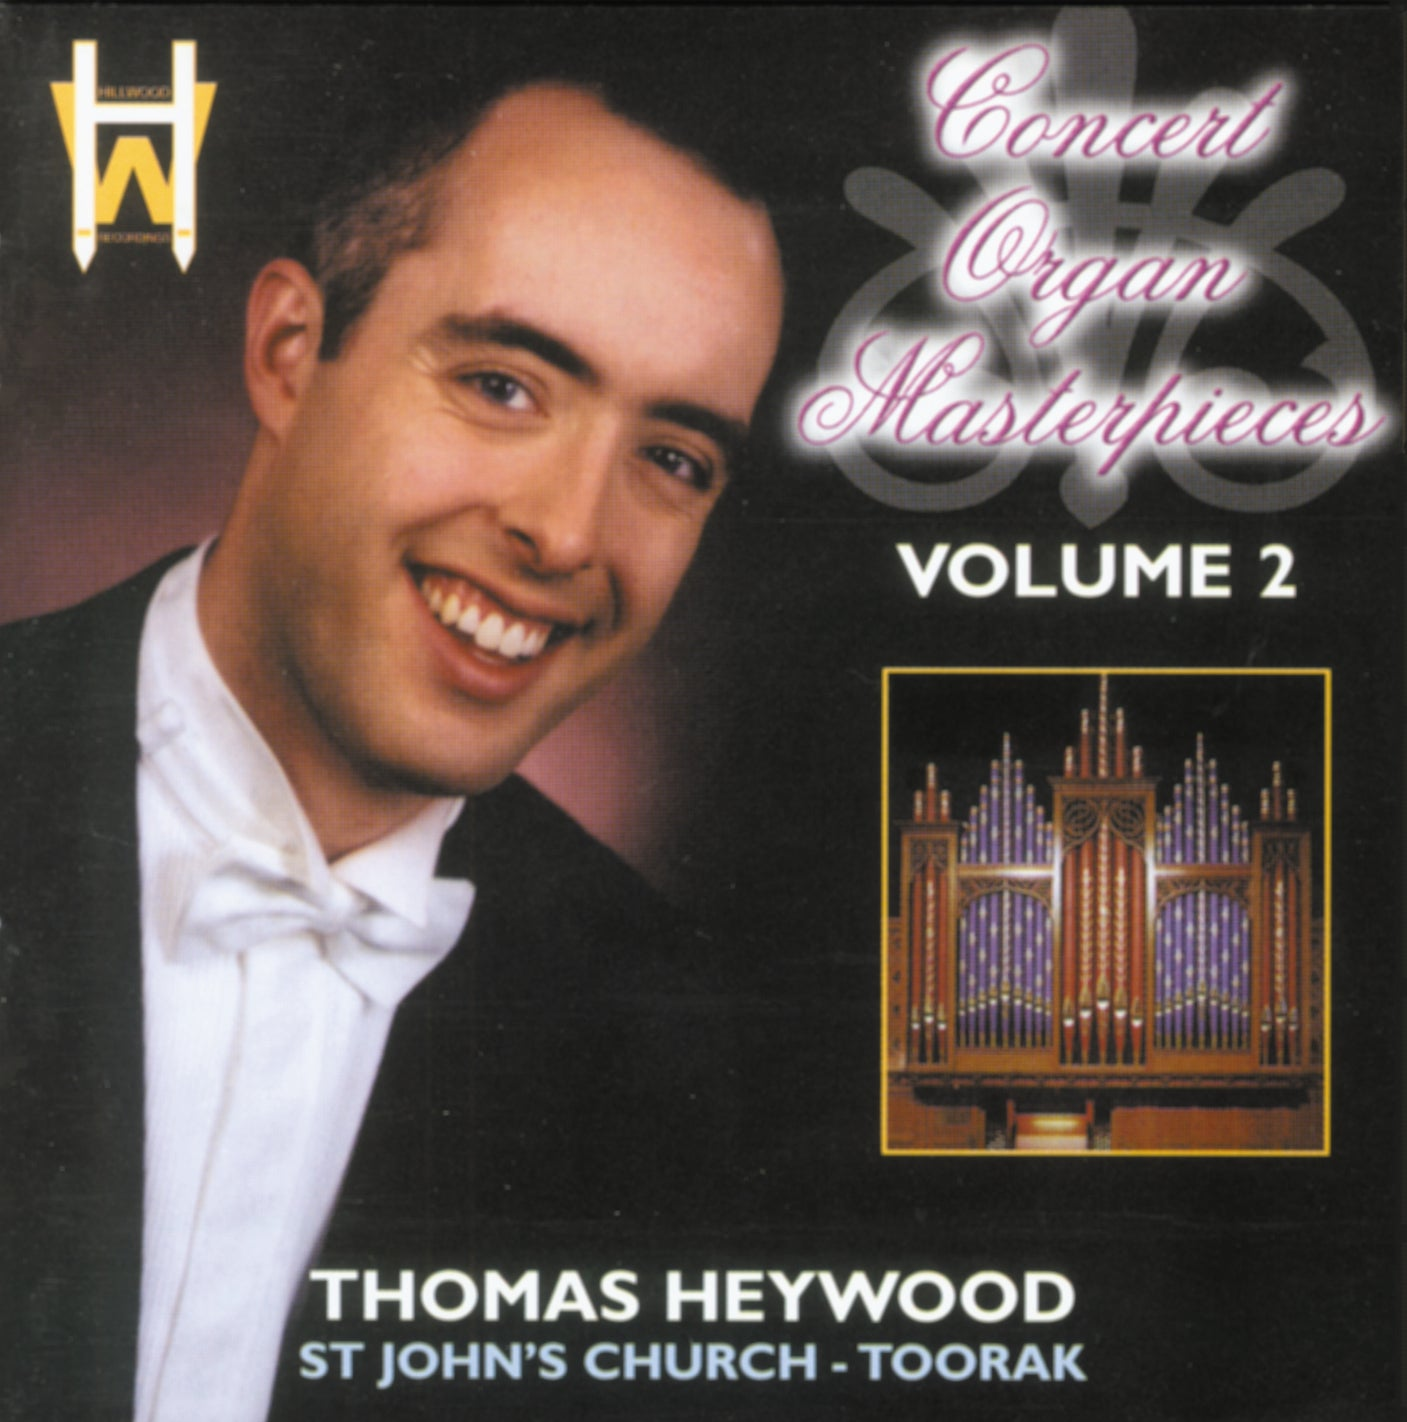 Concert Organ Masterpieces - Volume 2 (CD) | Thomas Heywood | Concert Organ International